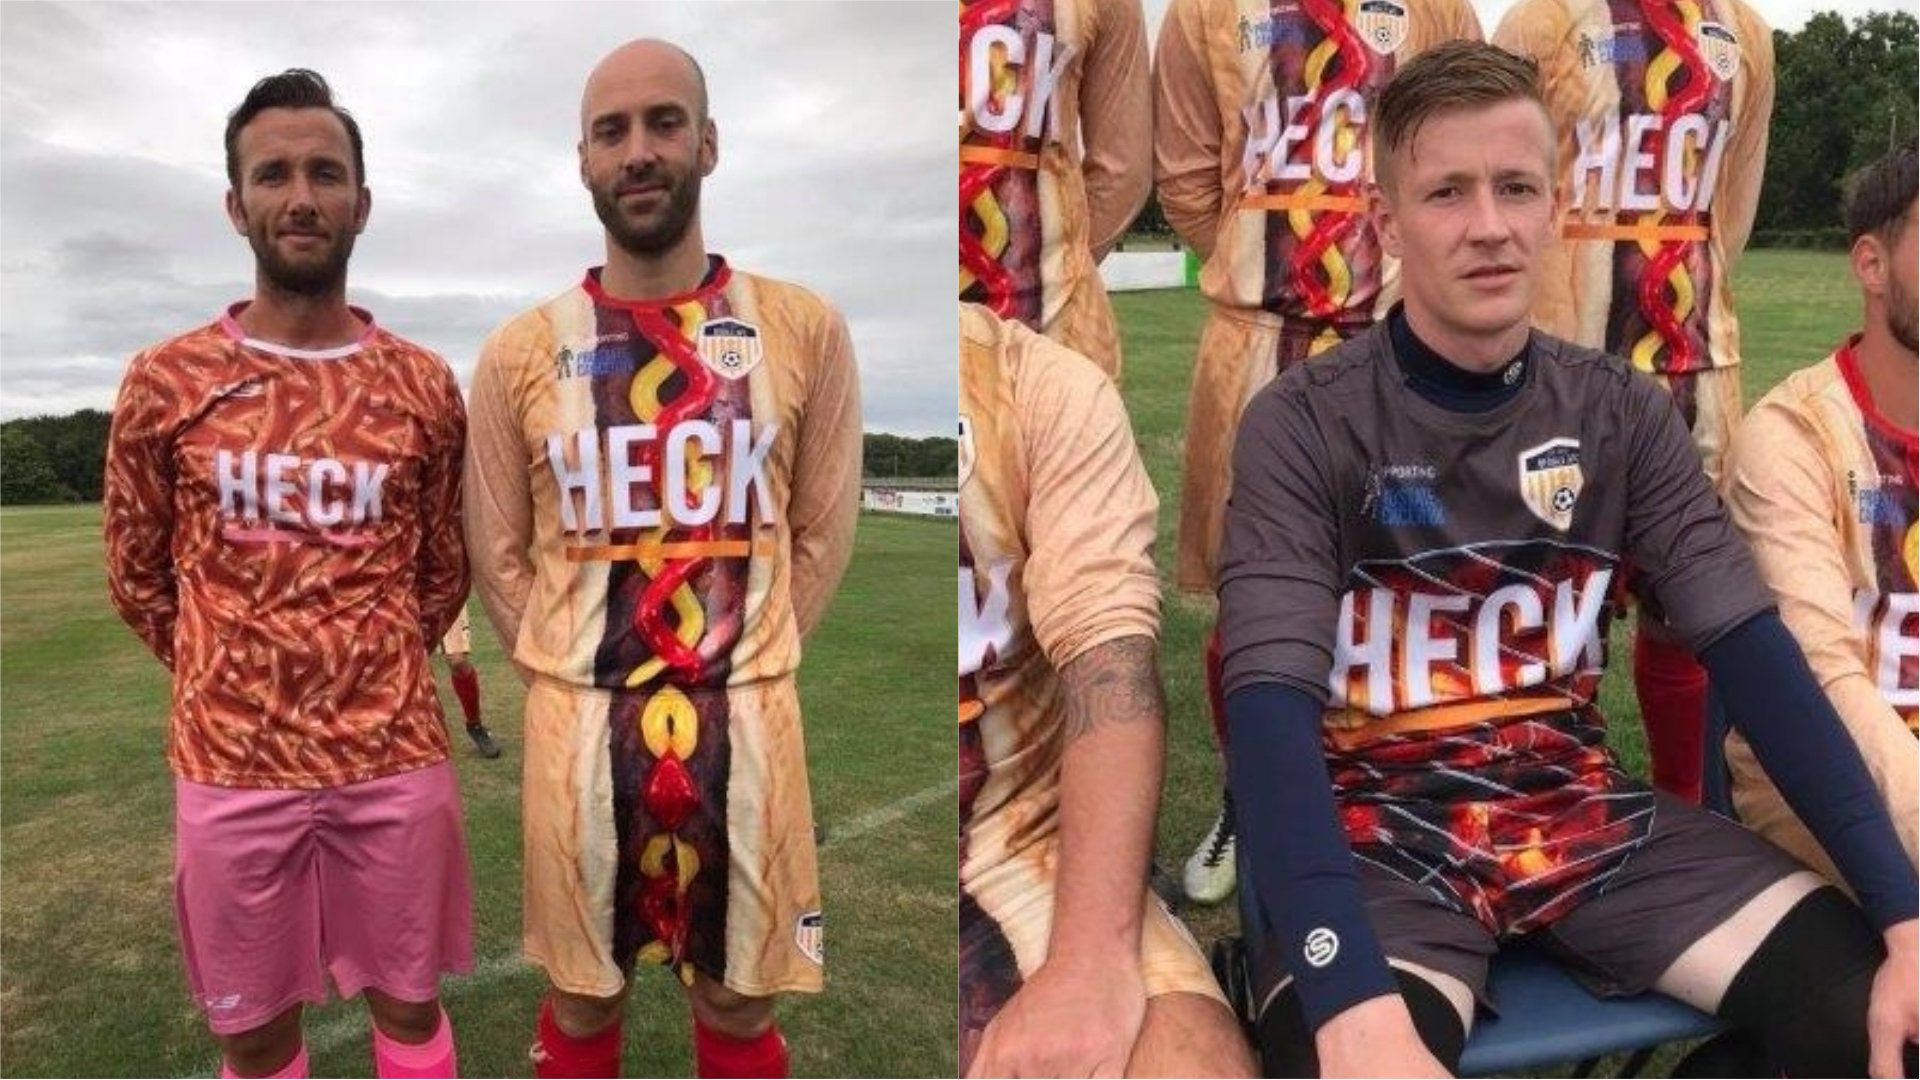 (From left to right) Bedale AFC's 2017/18 kit, 2018/19 kit and 2018/19 goalkeeper kit